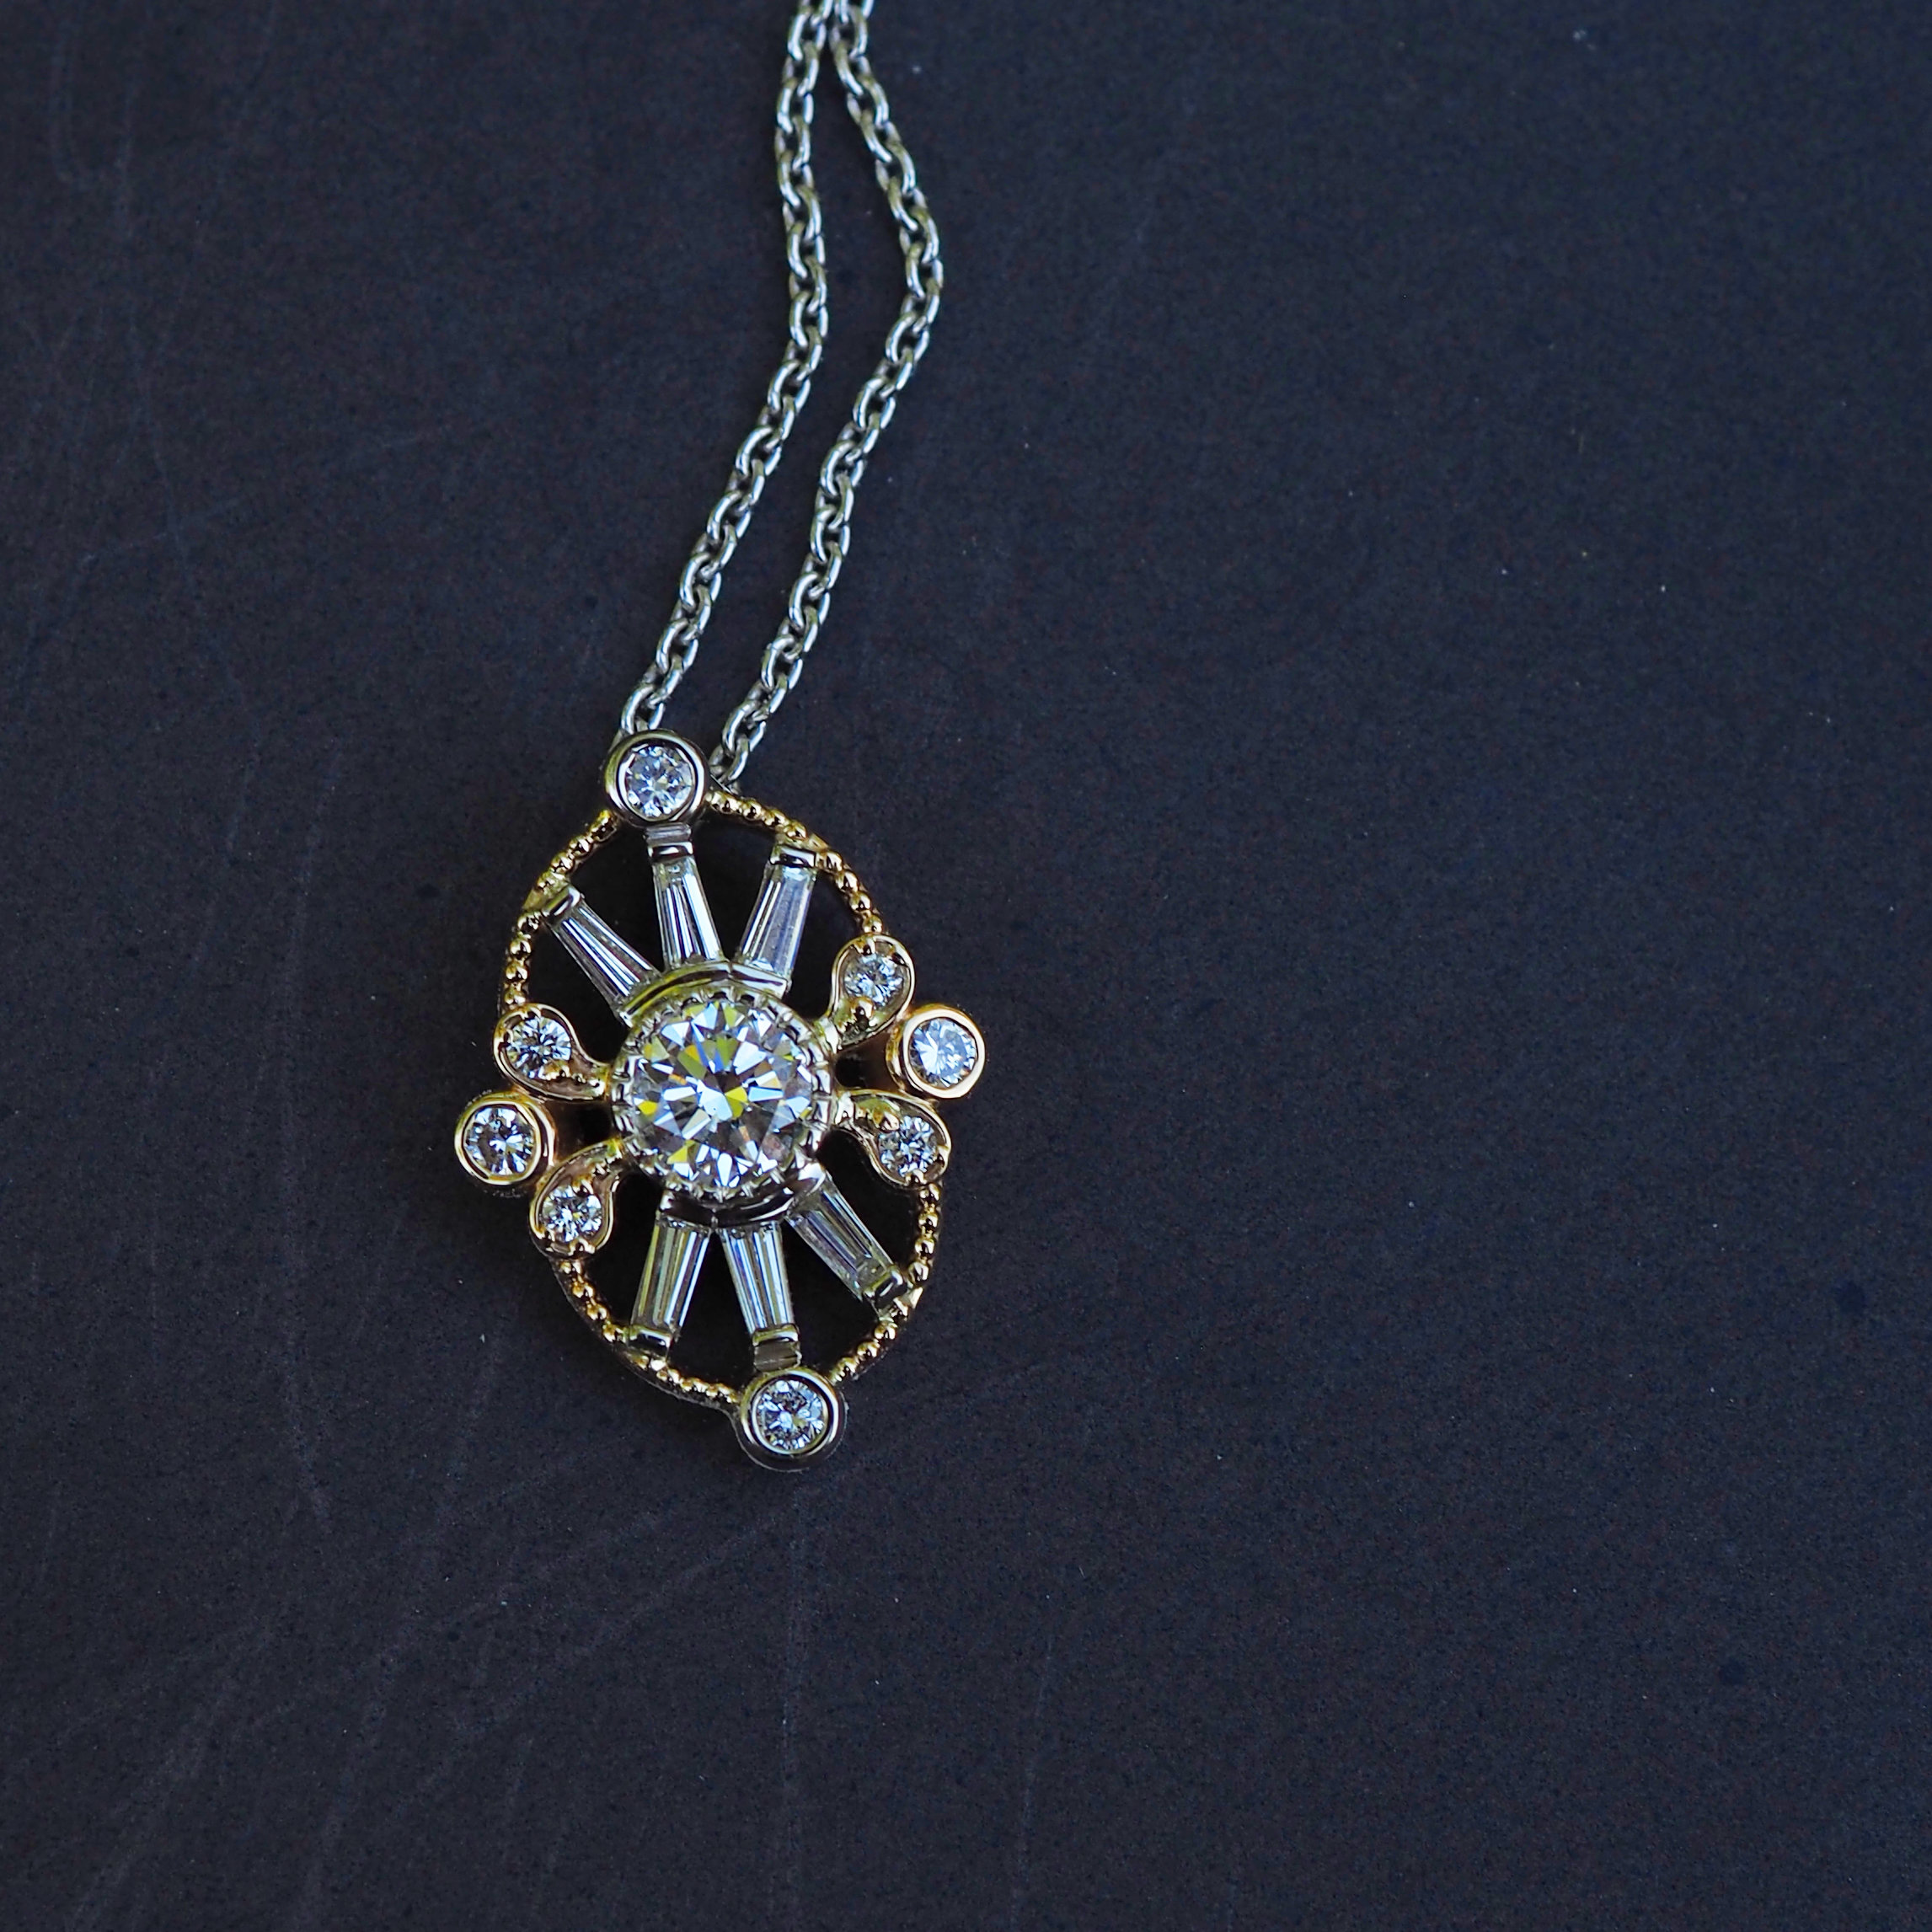 Victorian Inspired Two Tone Diamond Pendant